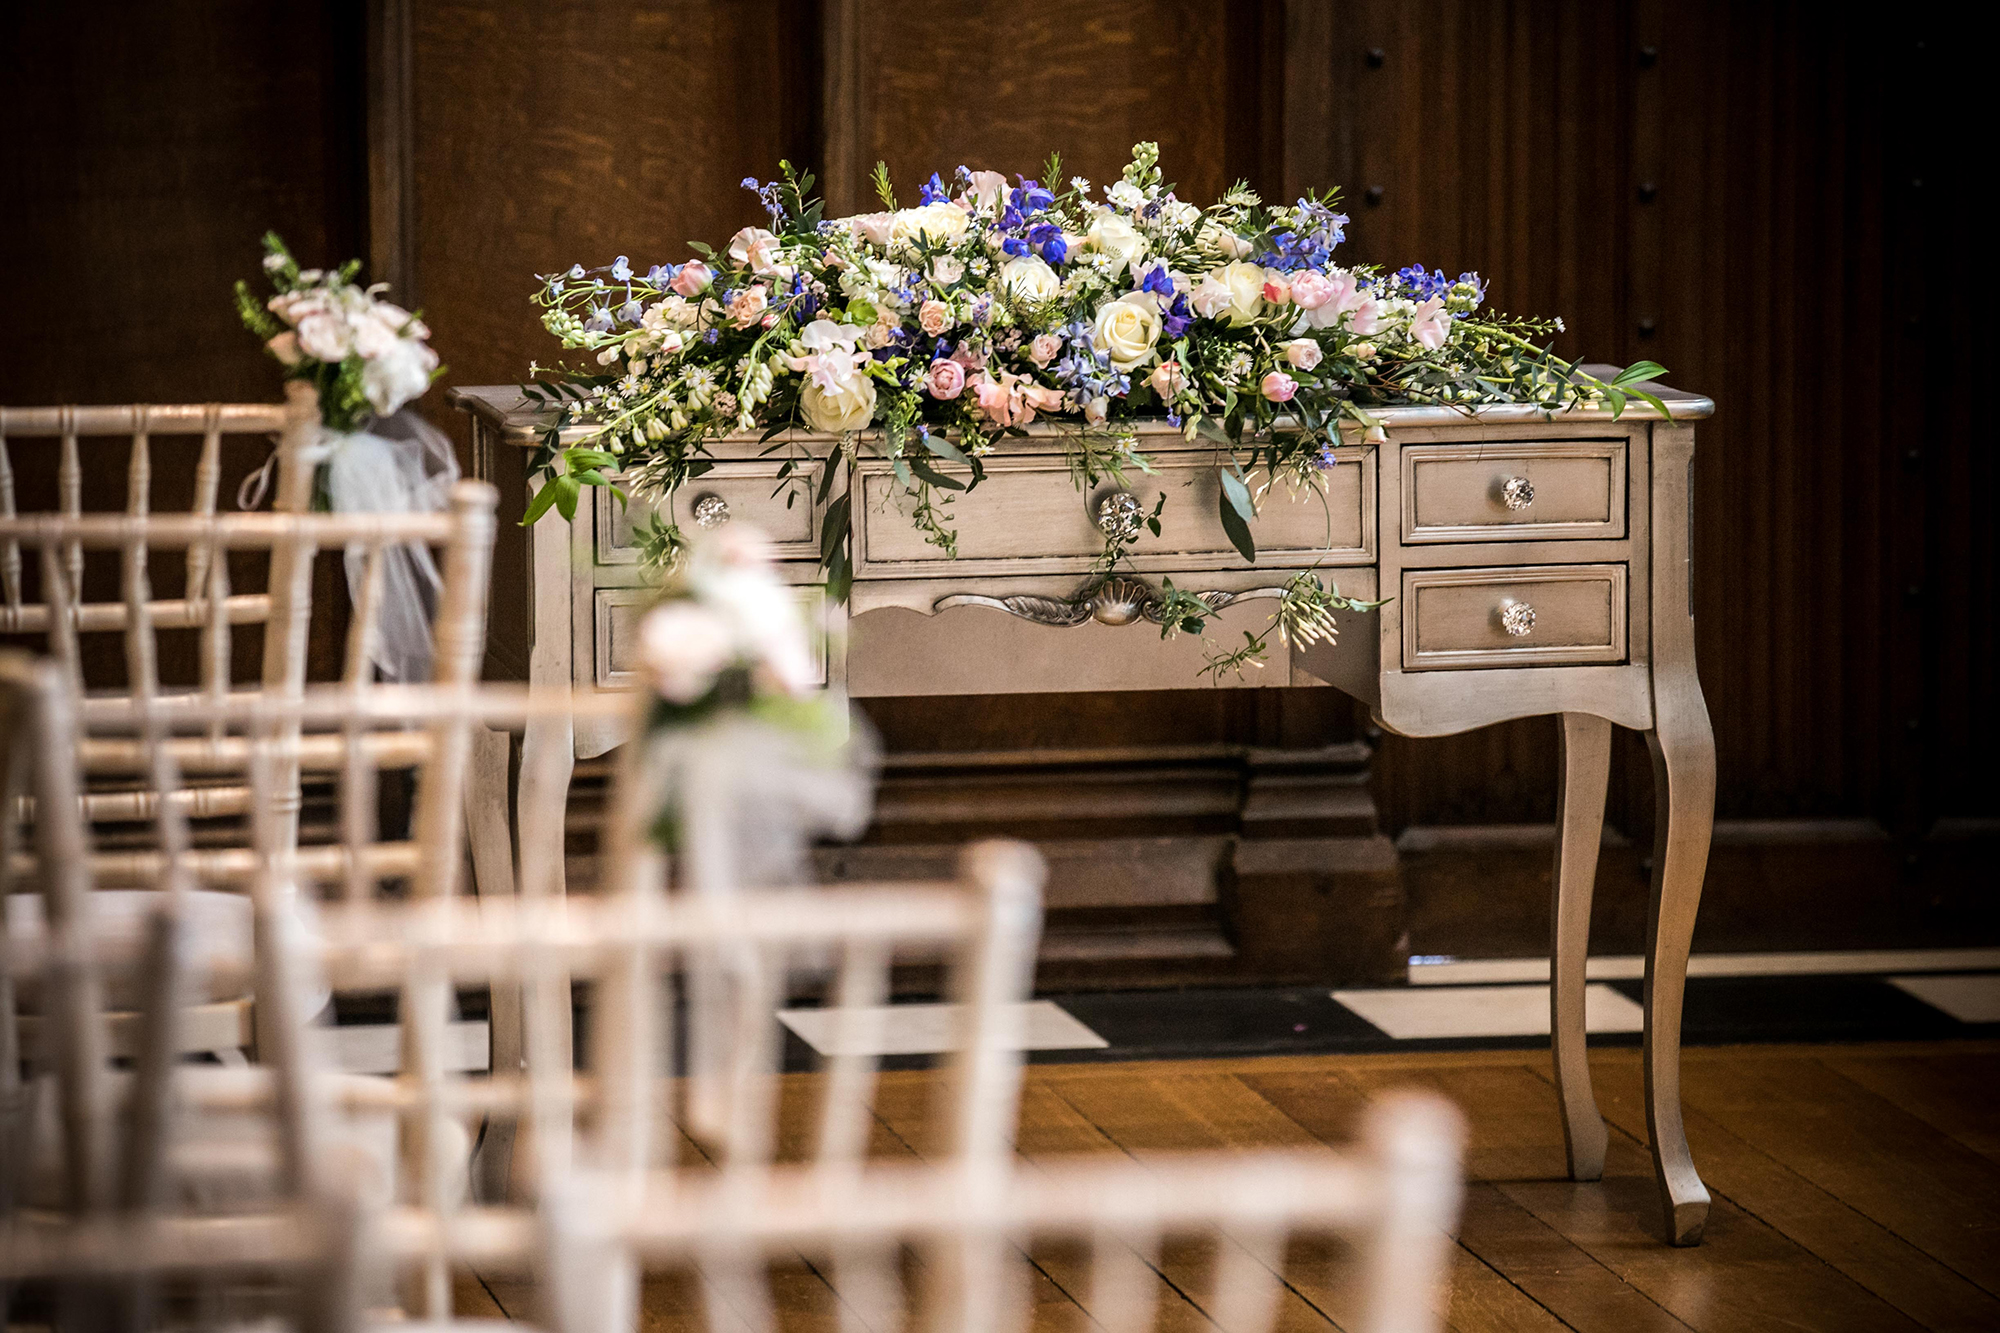 Wedding ceremony room with furniture and flowers at Hengrave Hall